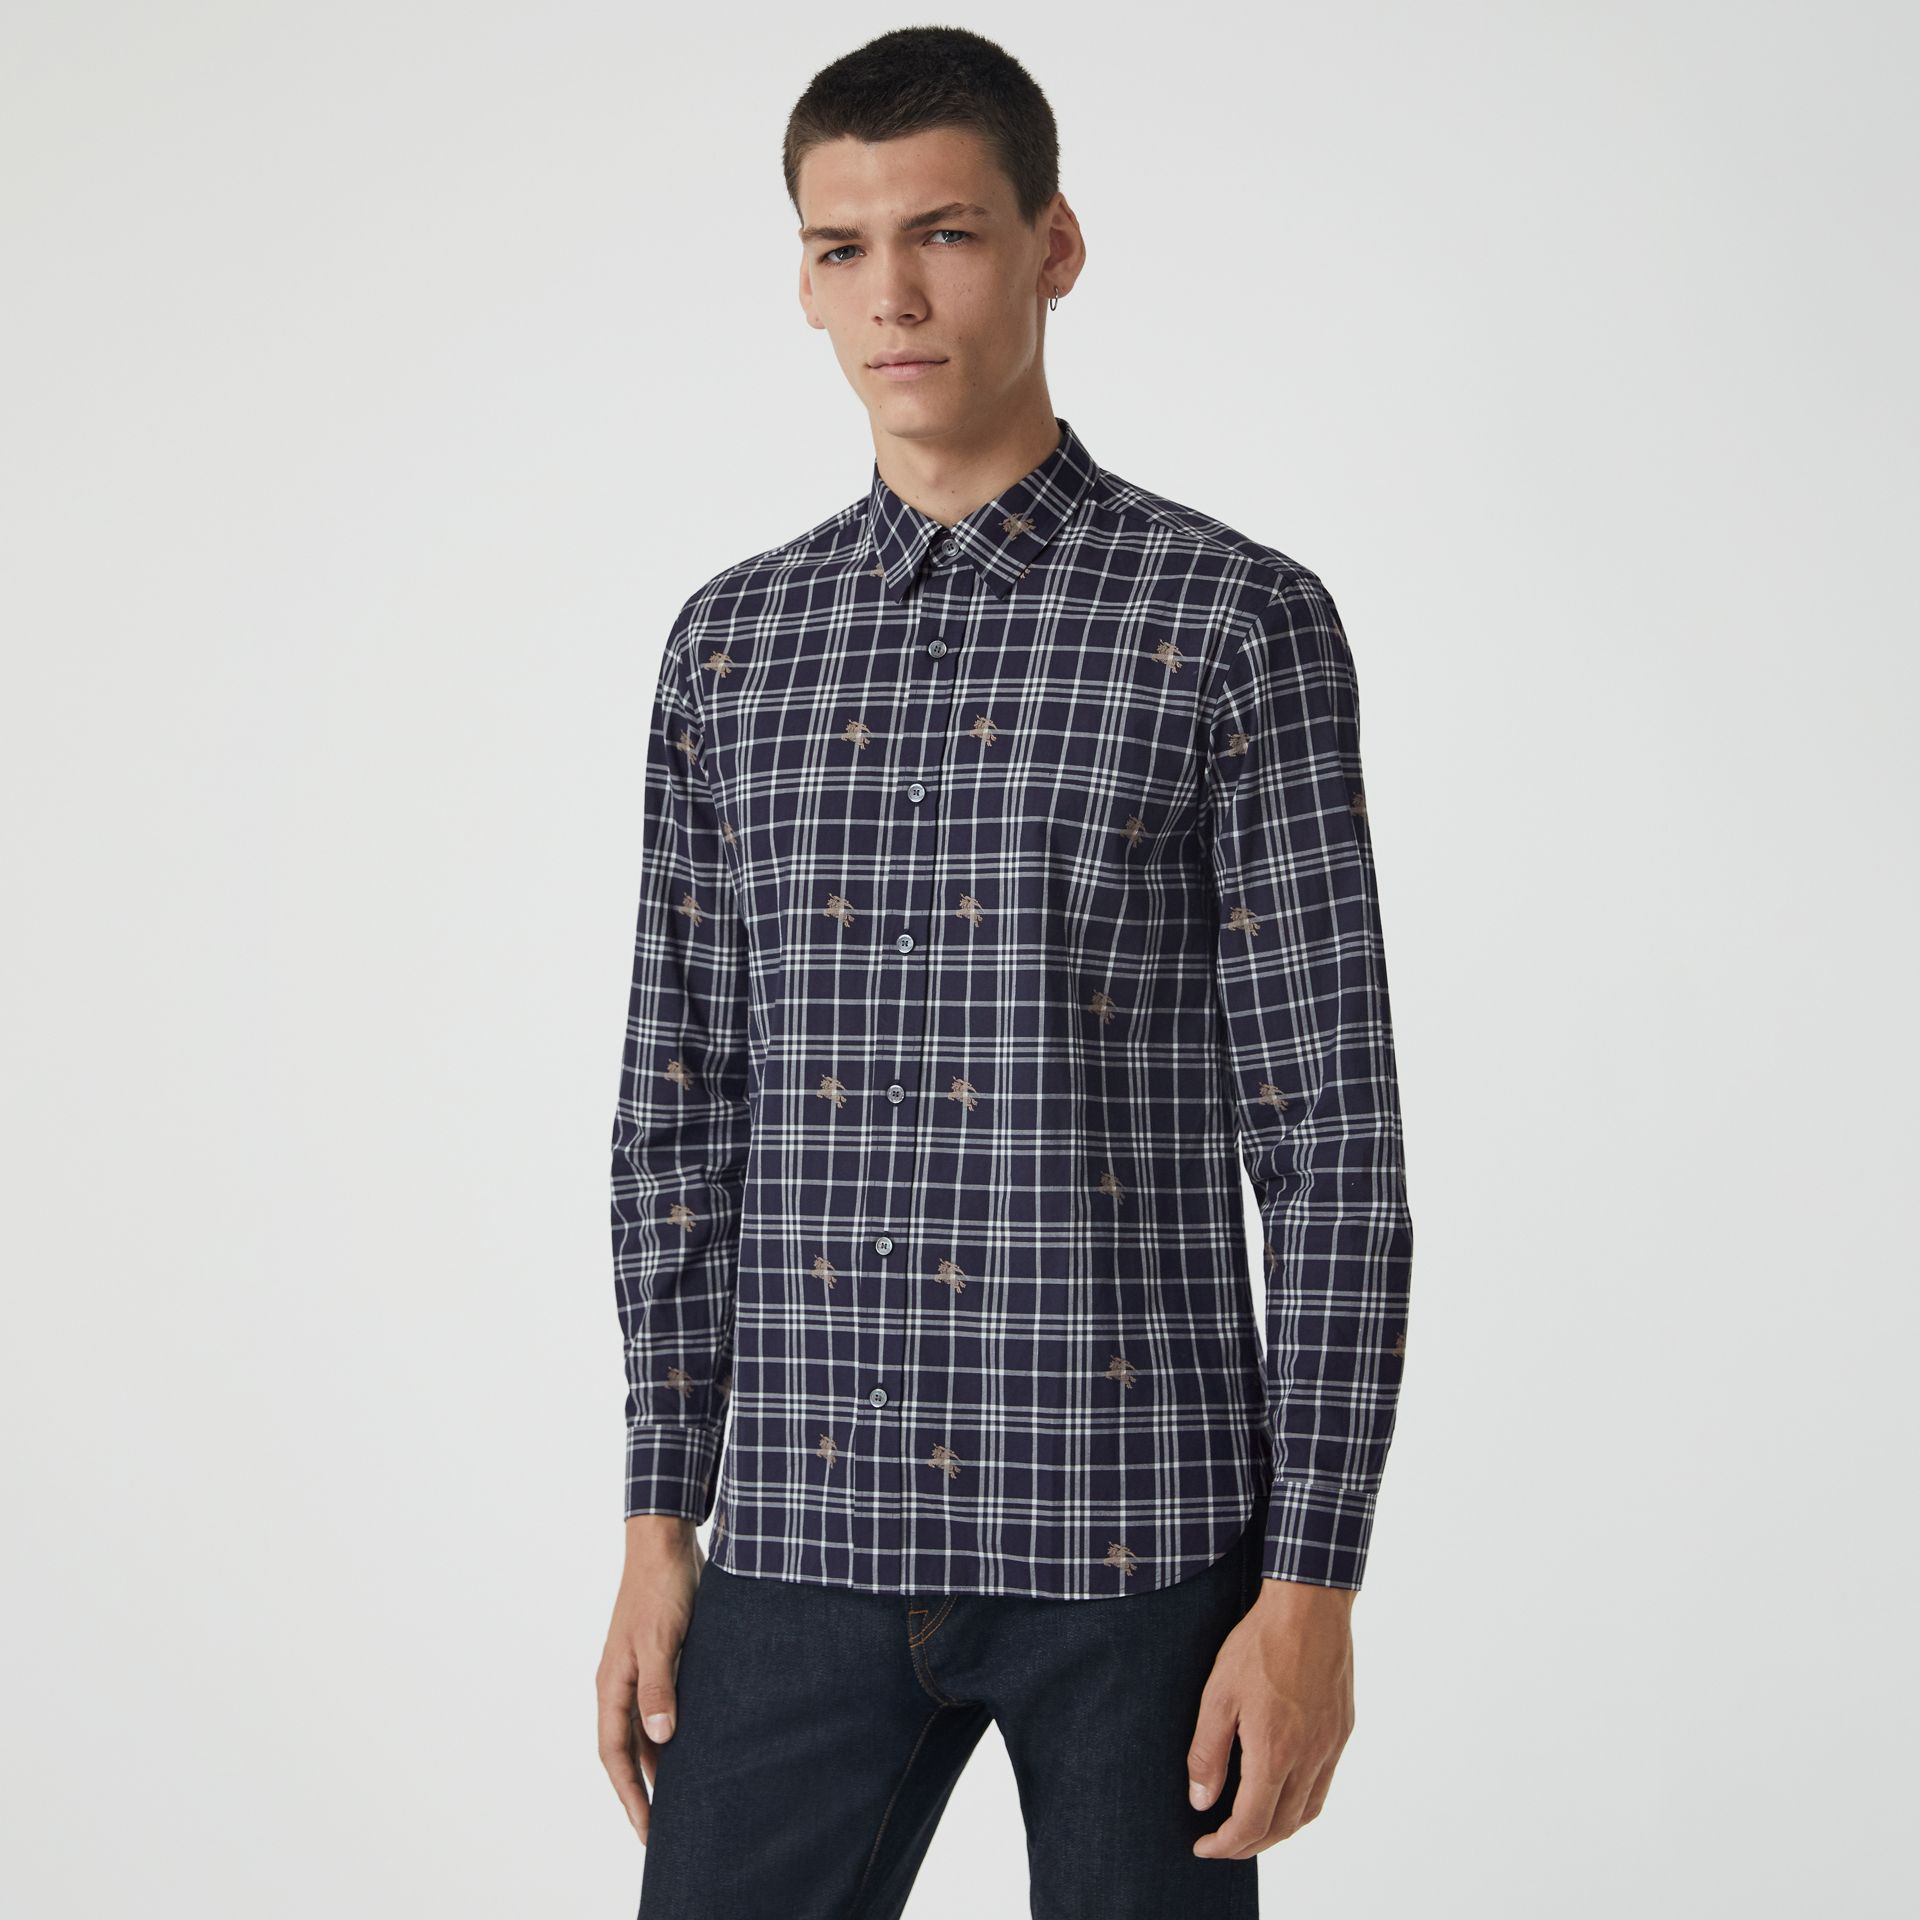 Equestrian Knight Check Cotton Shirt in Navy - Men | Burberry - gallery image 0